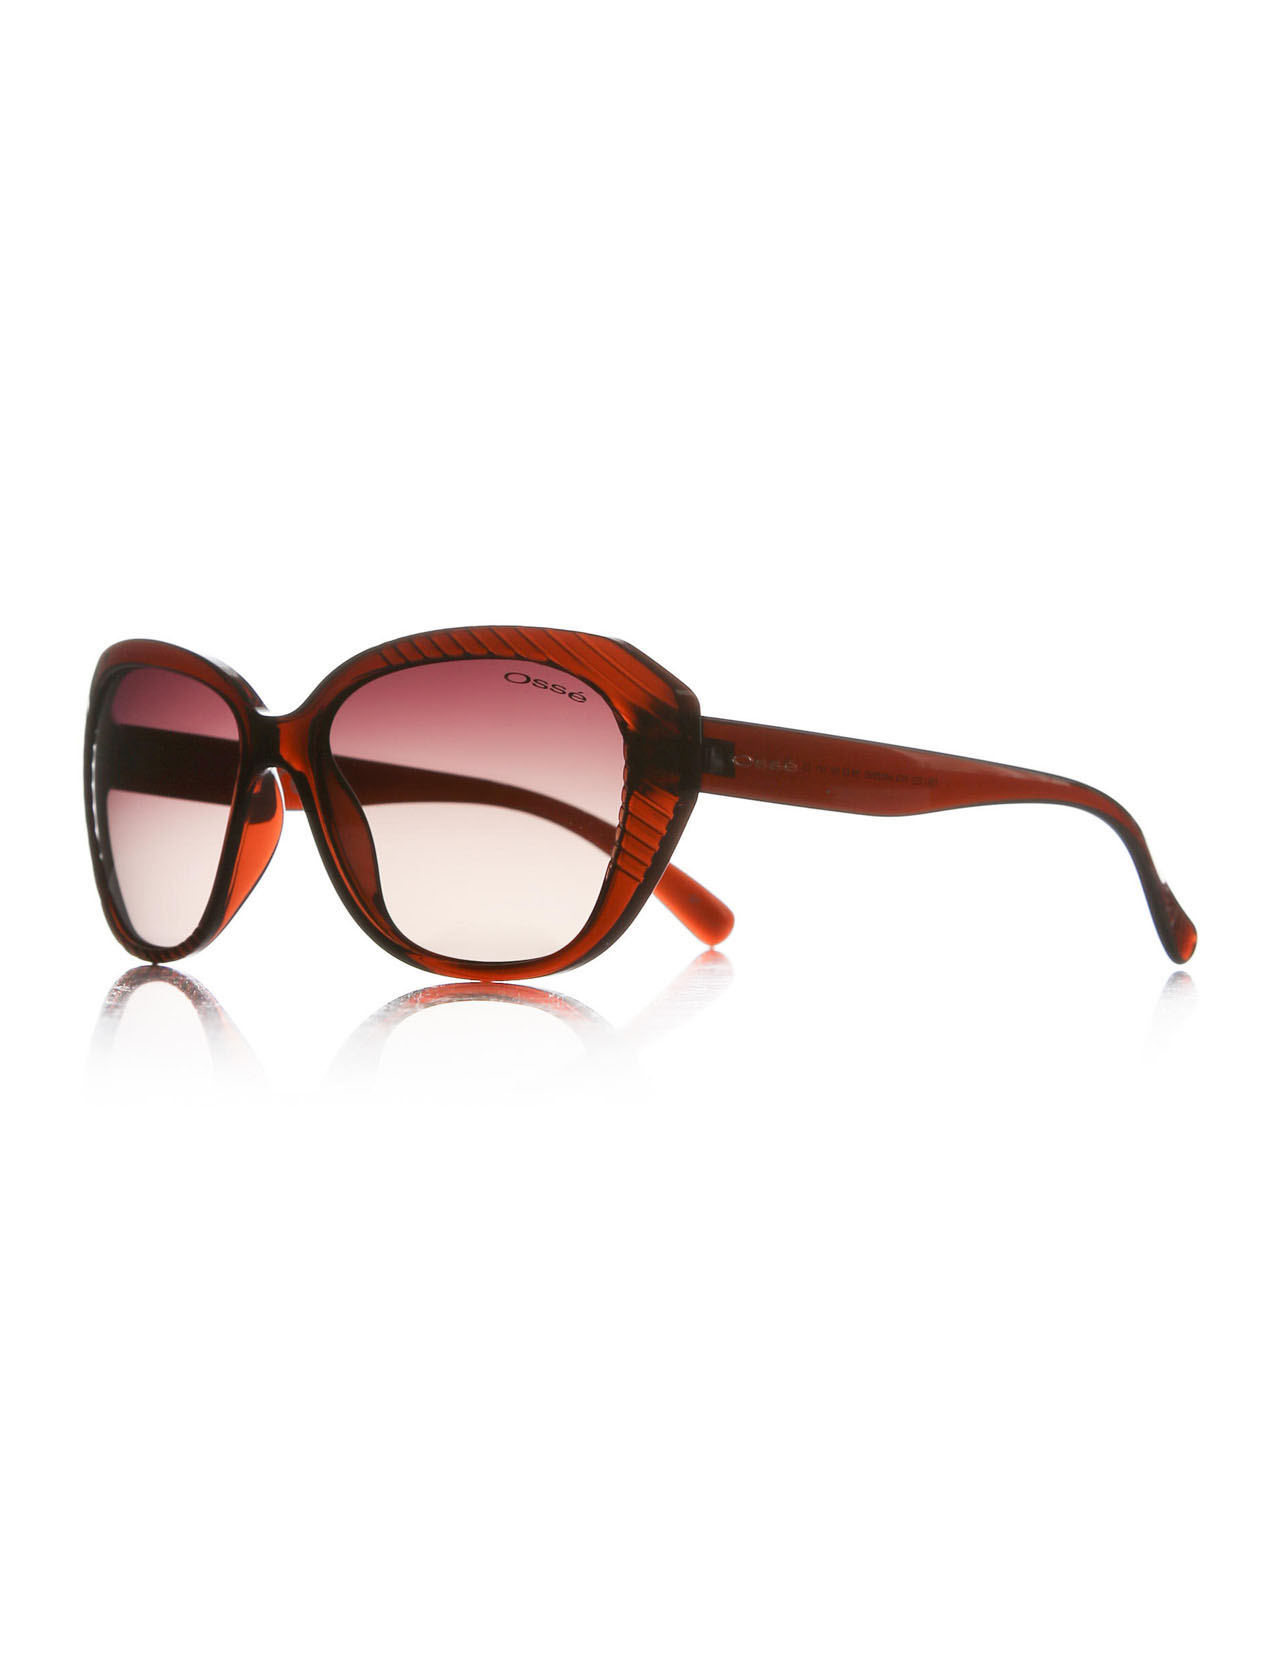 Women's sunglasses os 1753 03 bone Brown organic oval aval 58-16-141 osse